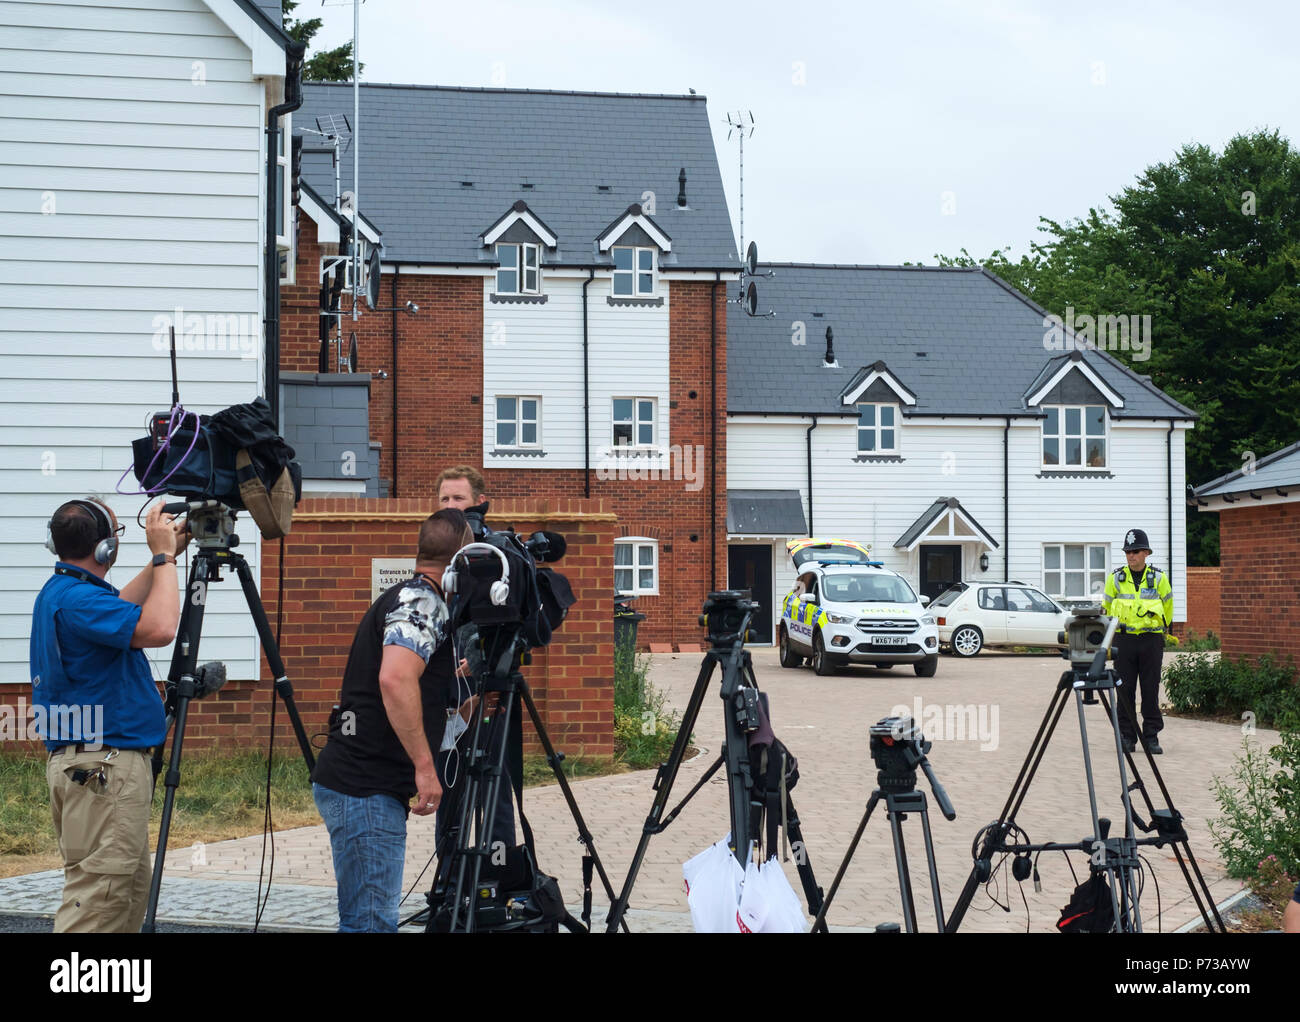 Amesbury, Wiltshire, England. 4th July 2018. After a man and woman collapsed in Amesbury from what appeared to be a drugs issue, the police have cordoned off their home and the local Baptist church. The couples collapse, the Police cordon and the proximity to the alleged poisoning of the Skripals in Salisbury has led to conjecture that the two may be conected.Picture shows media presence and Police cordon at Muggleton Road. ©JMF News / Alamy Live News Stock Photo